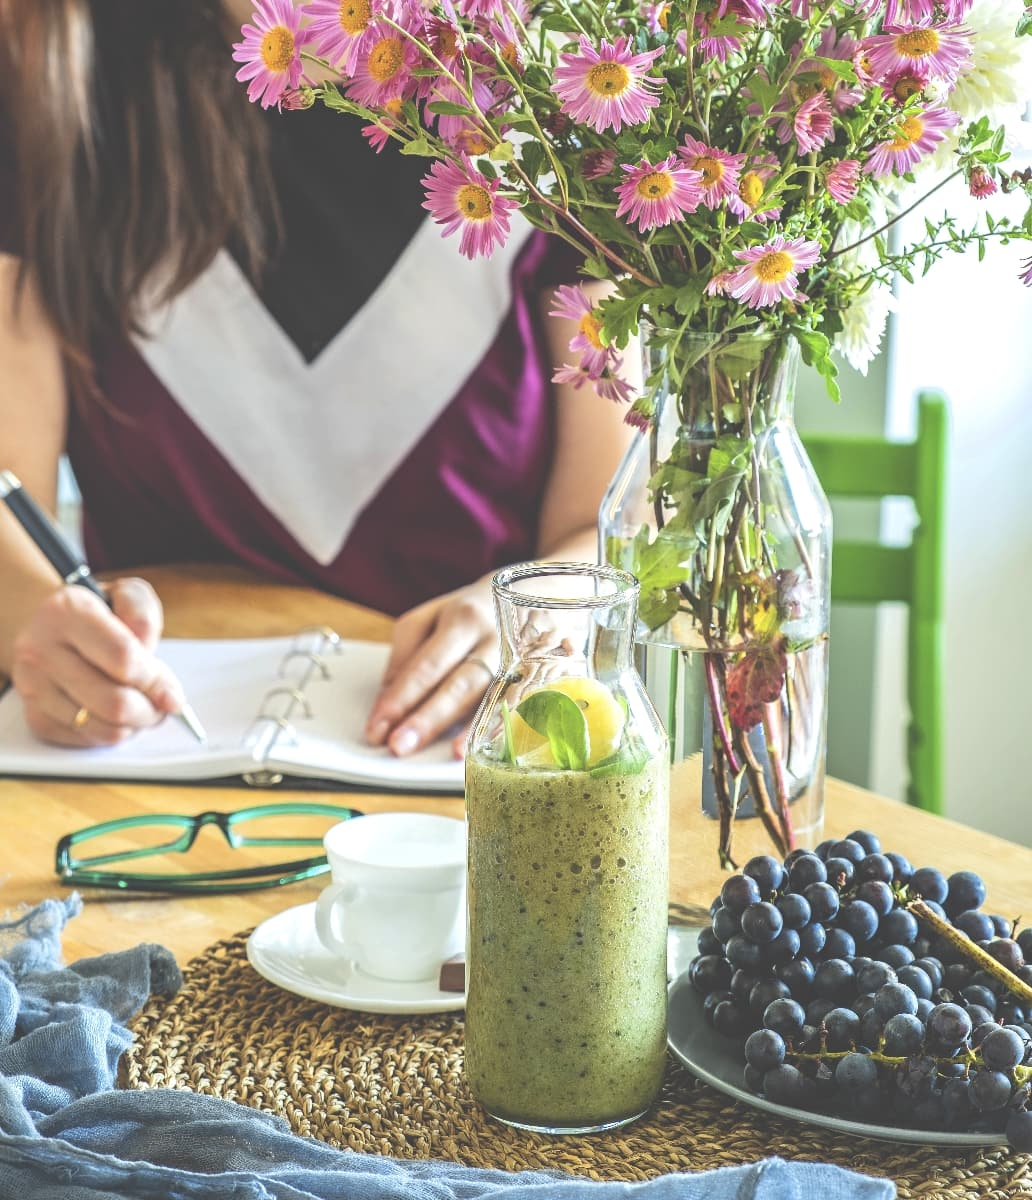 Young beautiful woman in the kitchen at the table writing in a notebook, breakfast business lady